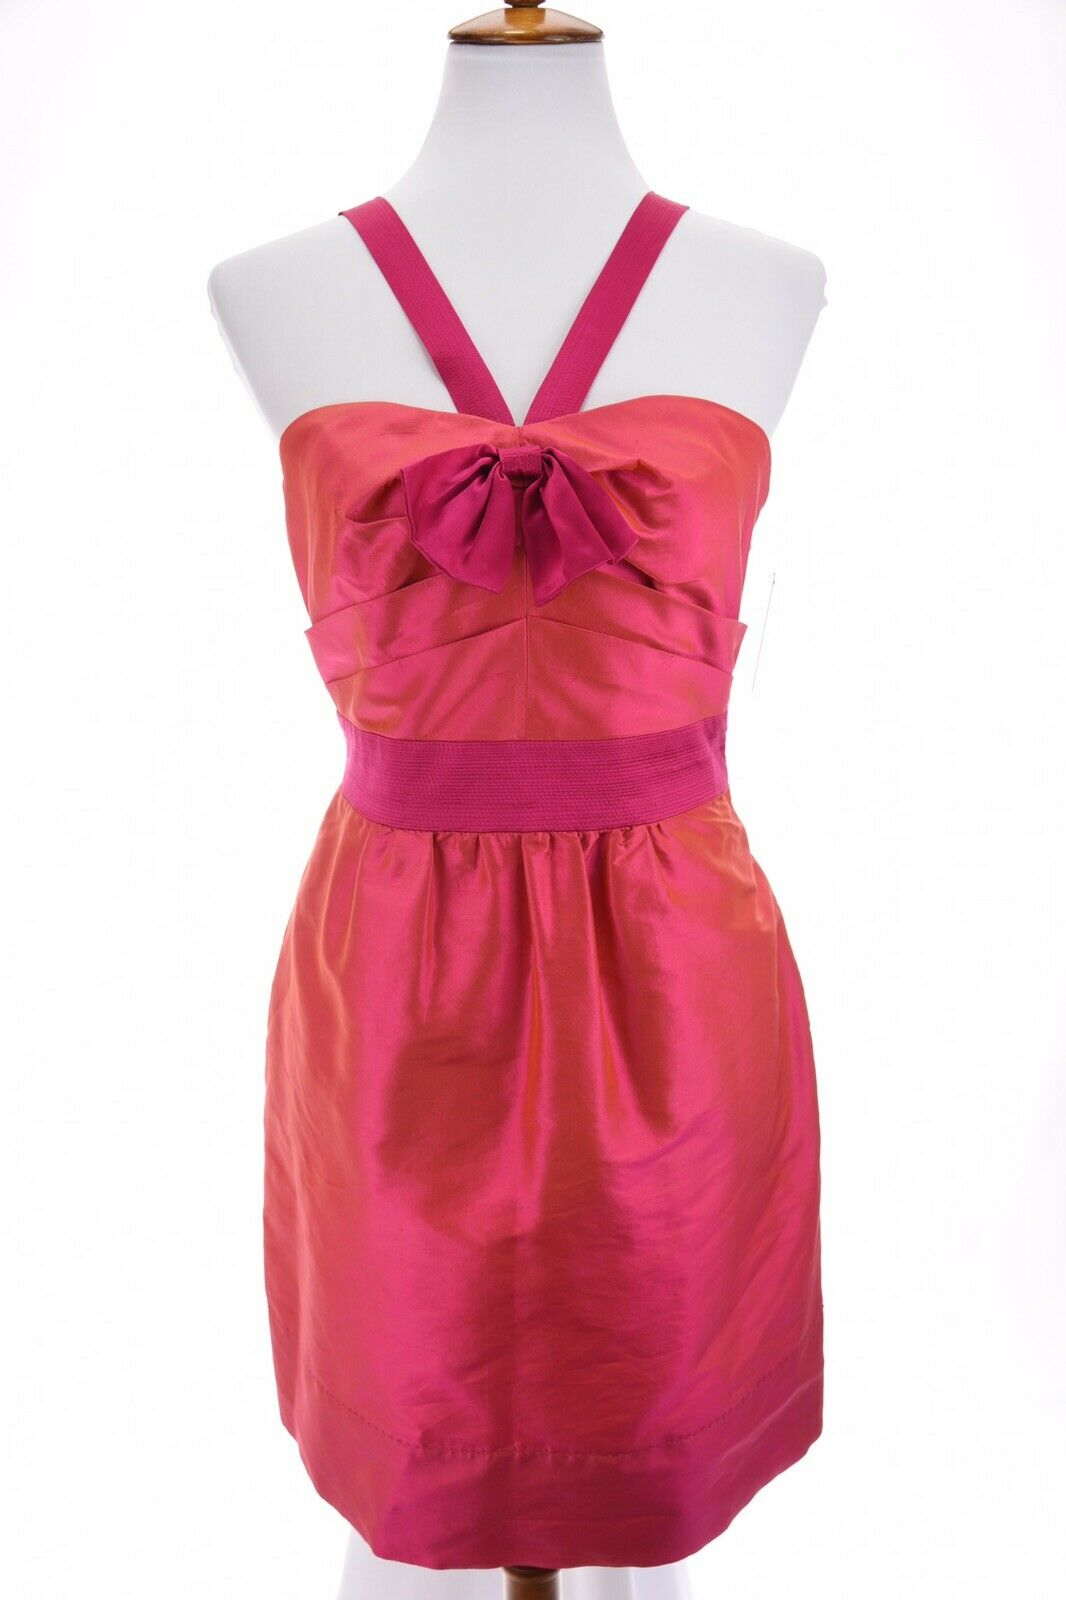 NWT Phoebe Couture Fit and Flare Silk Taffeta Dress Prom Iridescent Pink Sz 8